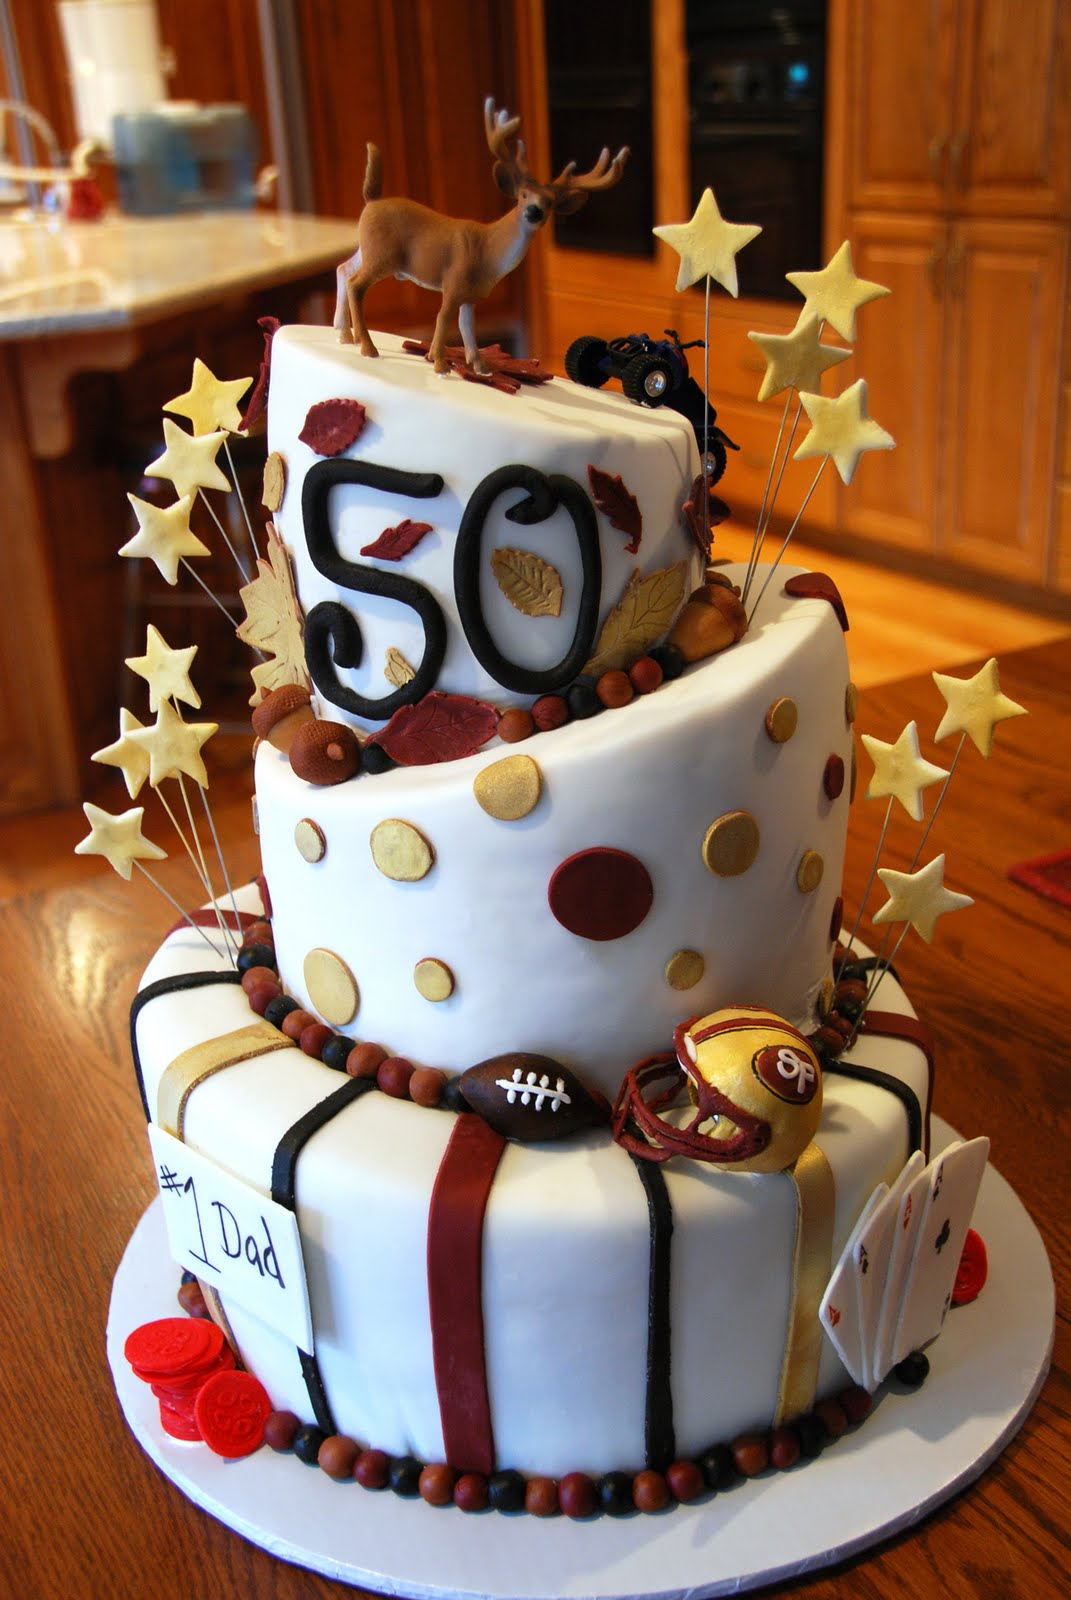 Images Of Cake For 50th Birthday : Cup-ee-Cakes: 50th Birthday Cake